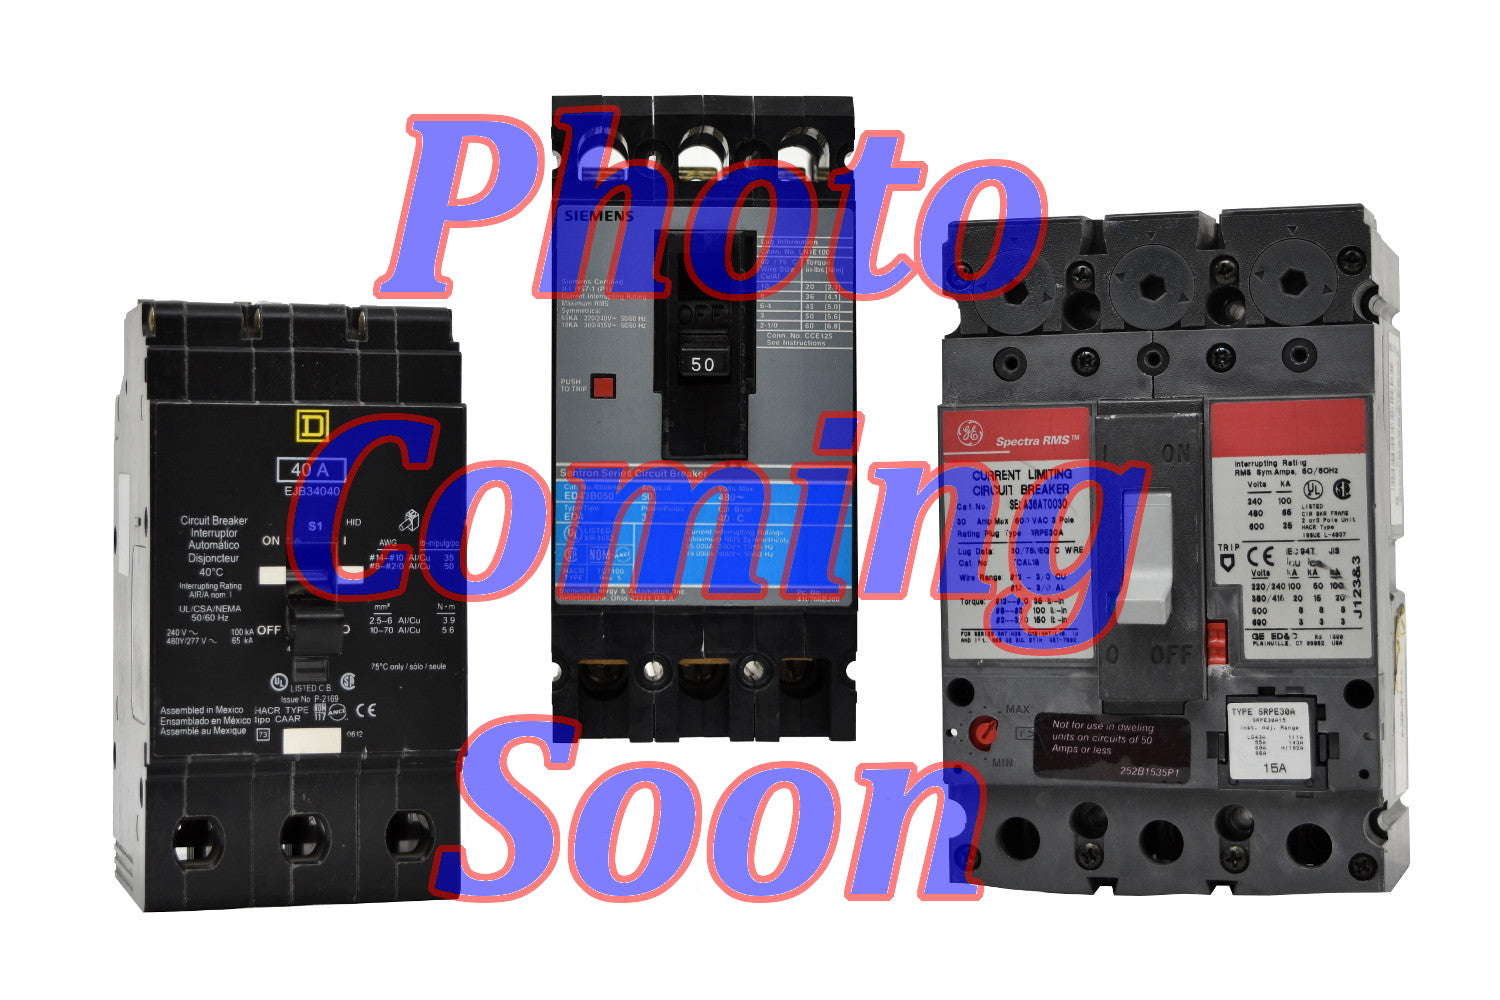 Siemens CLF63B080 Circuit Breakers